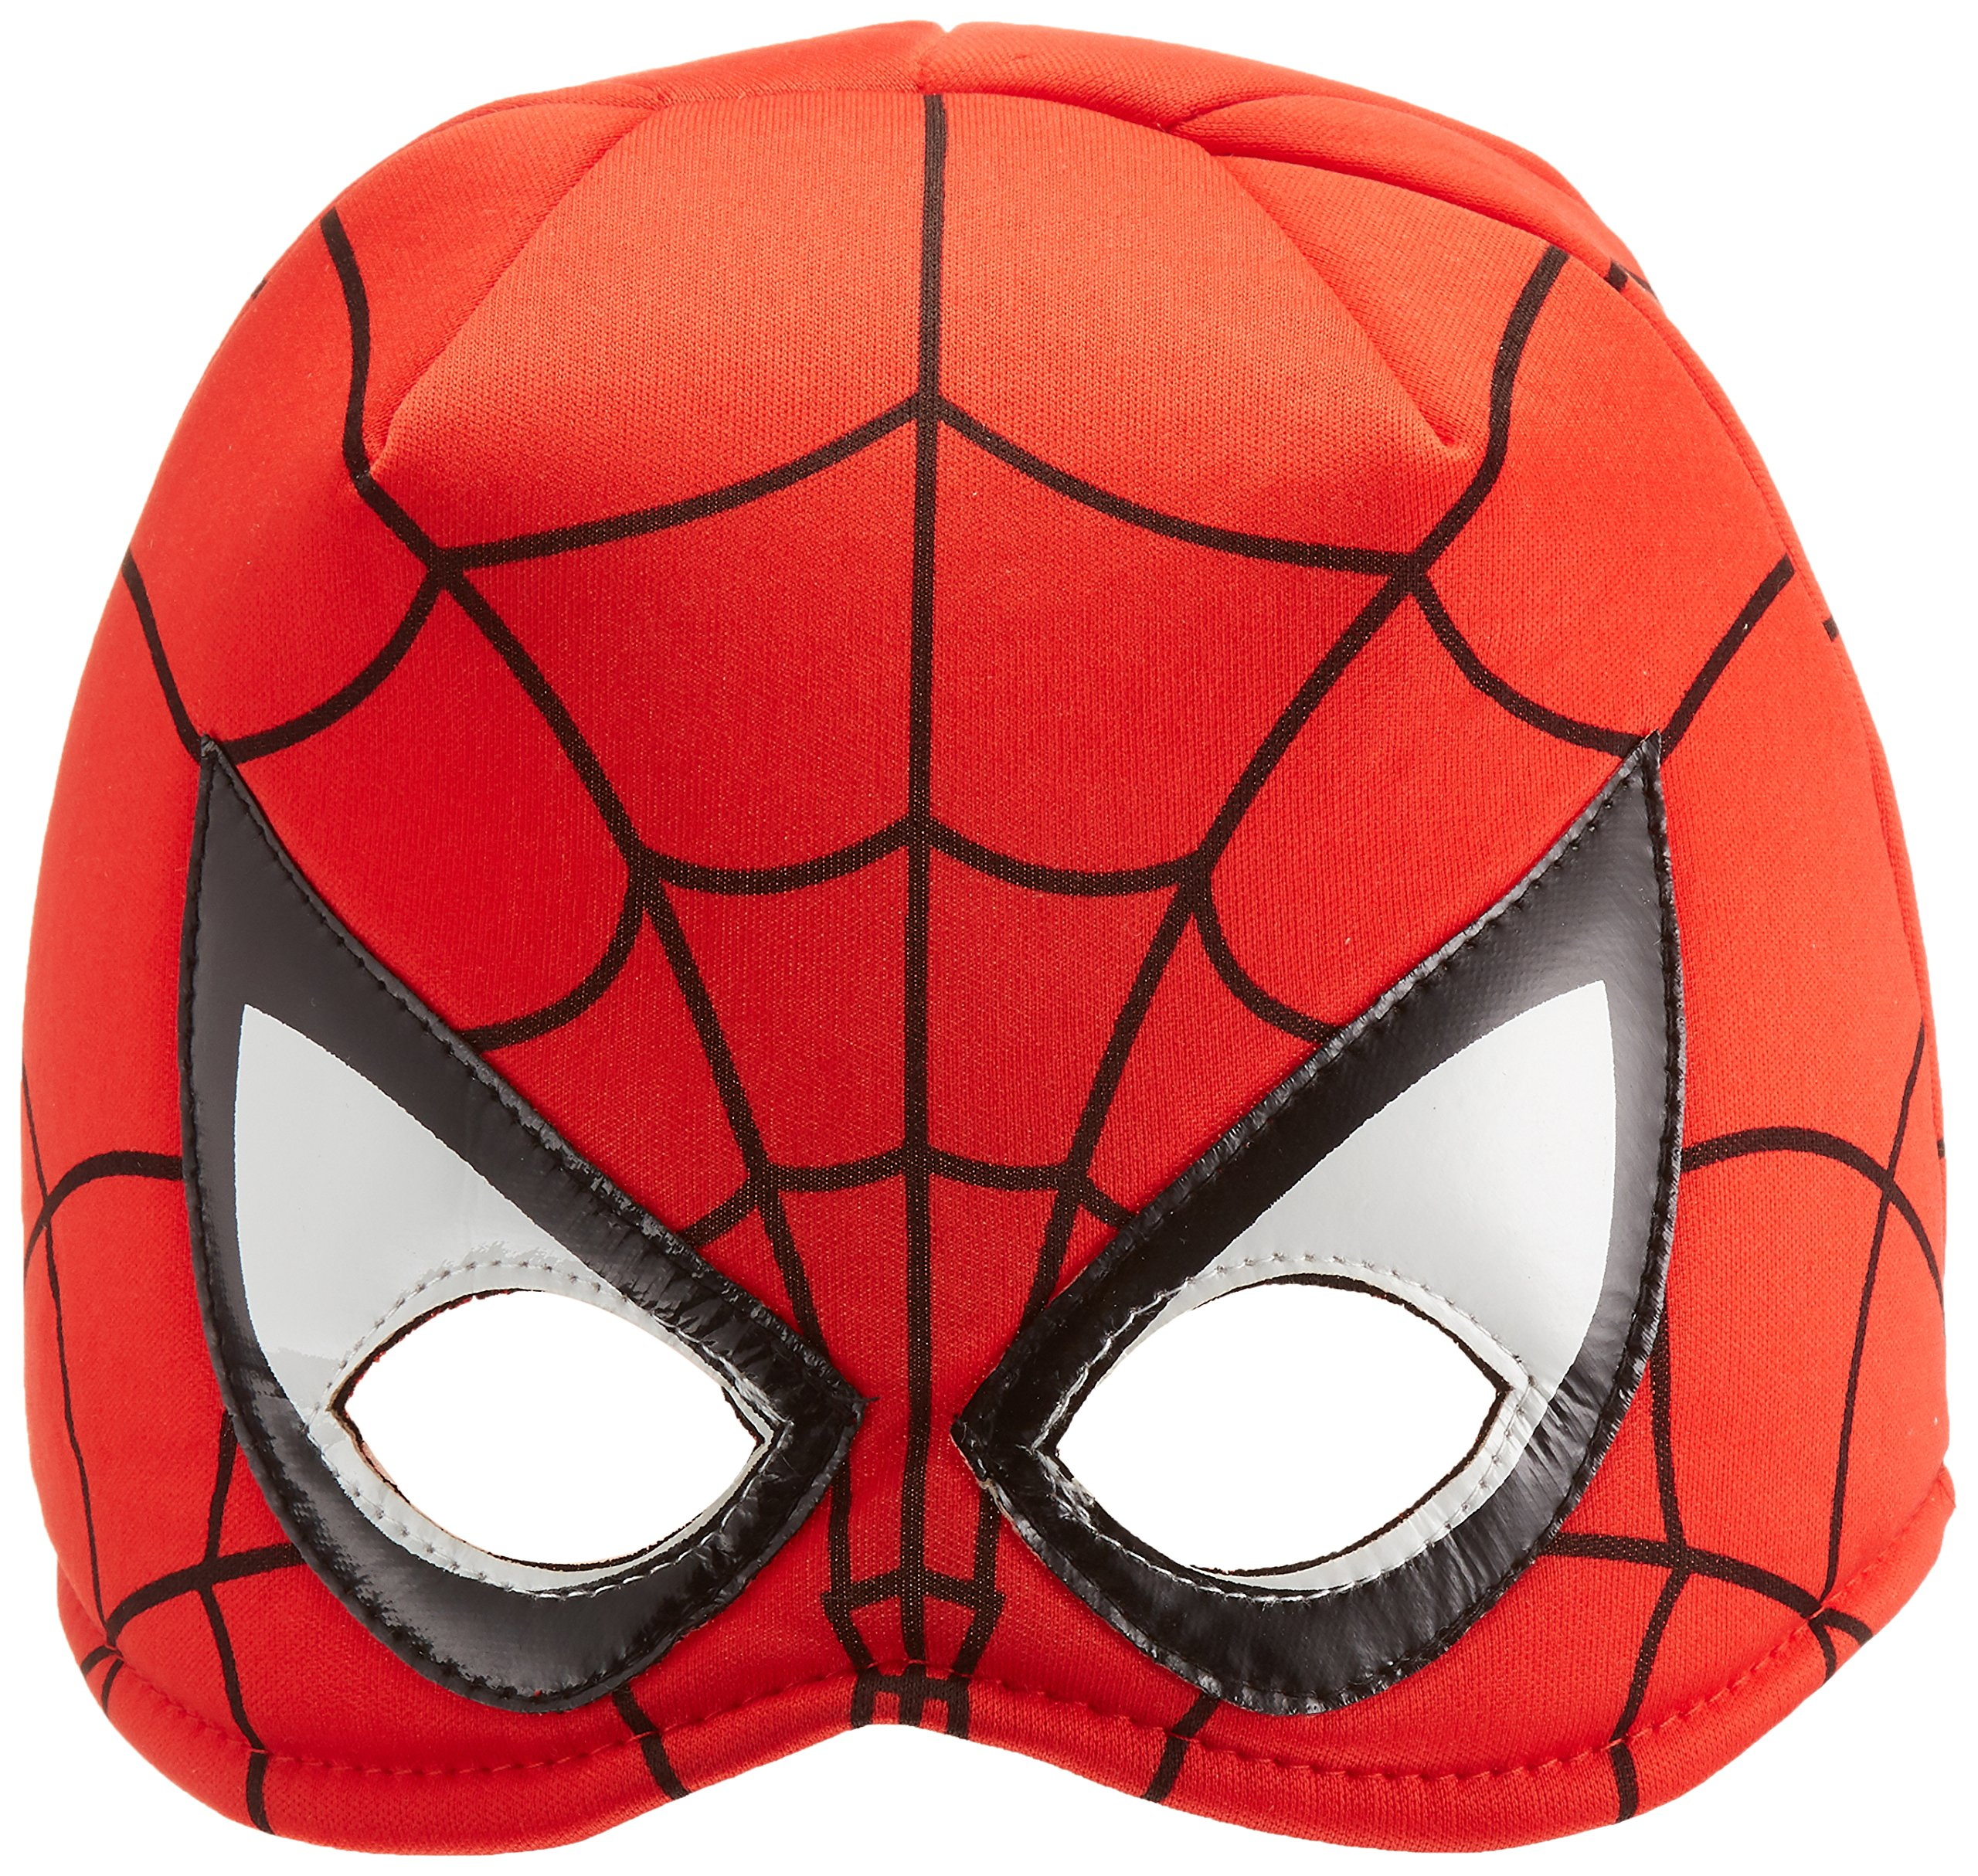 Spider-Man Deluxe Mask by AMERICAN GREETINGS